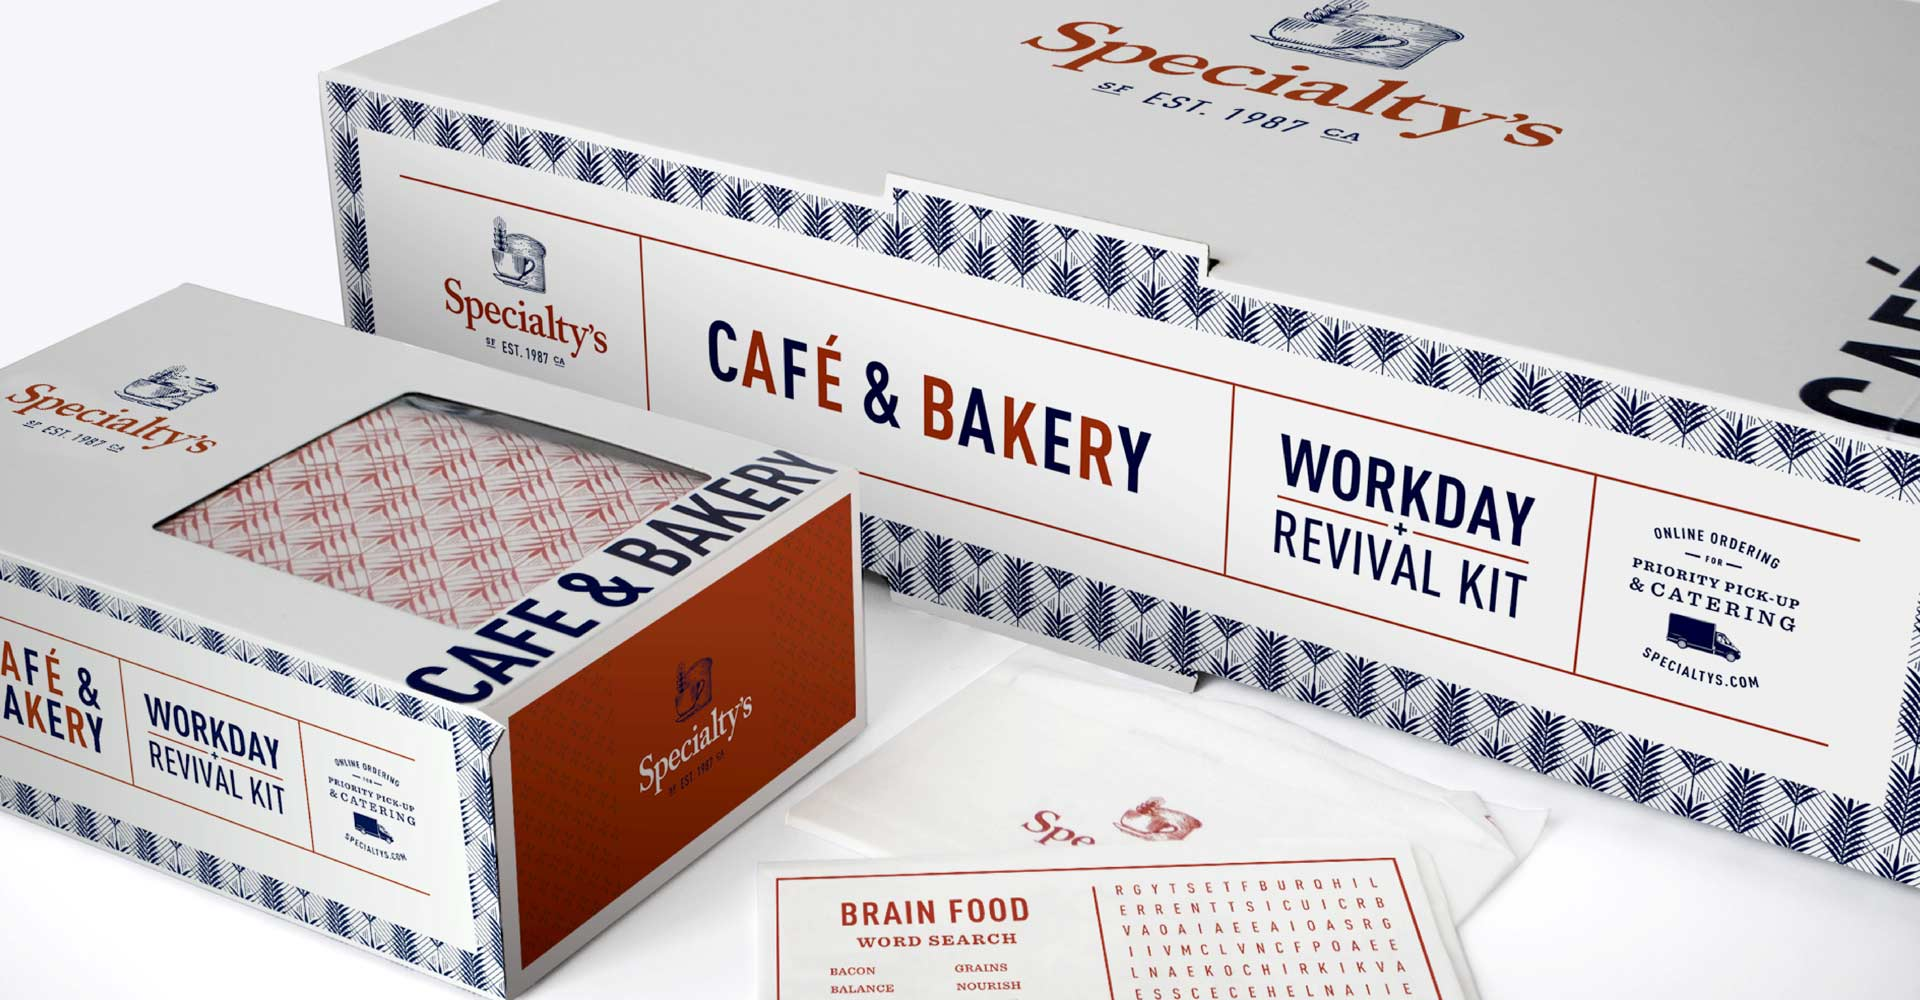 Creative_Retail_Packaging_Design_Specialtys_Cafe_Bakery-11.jpg